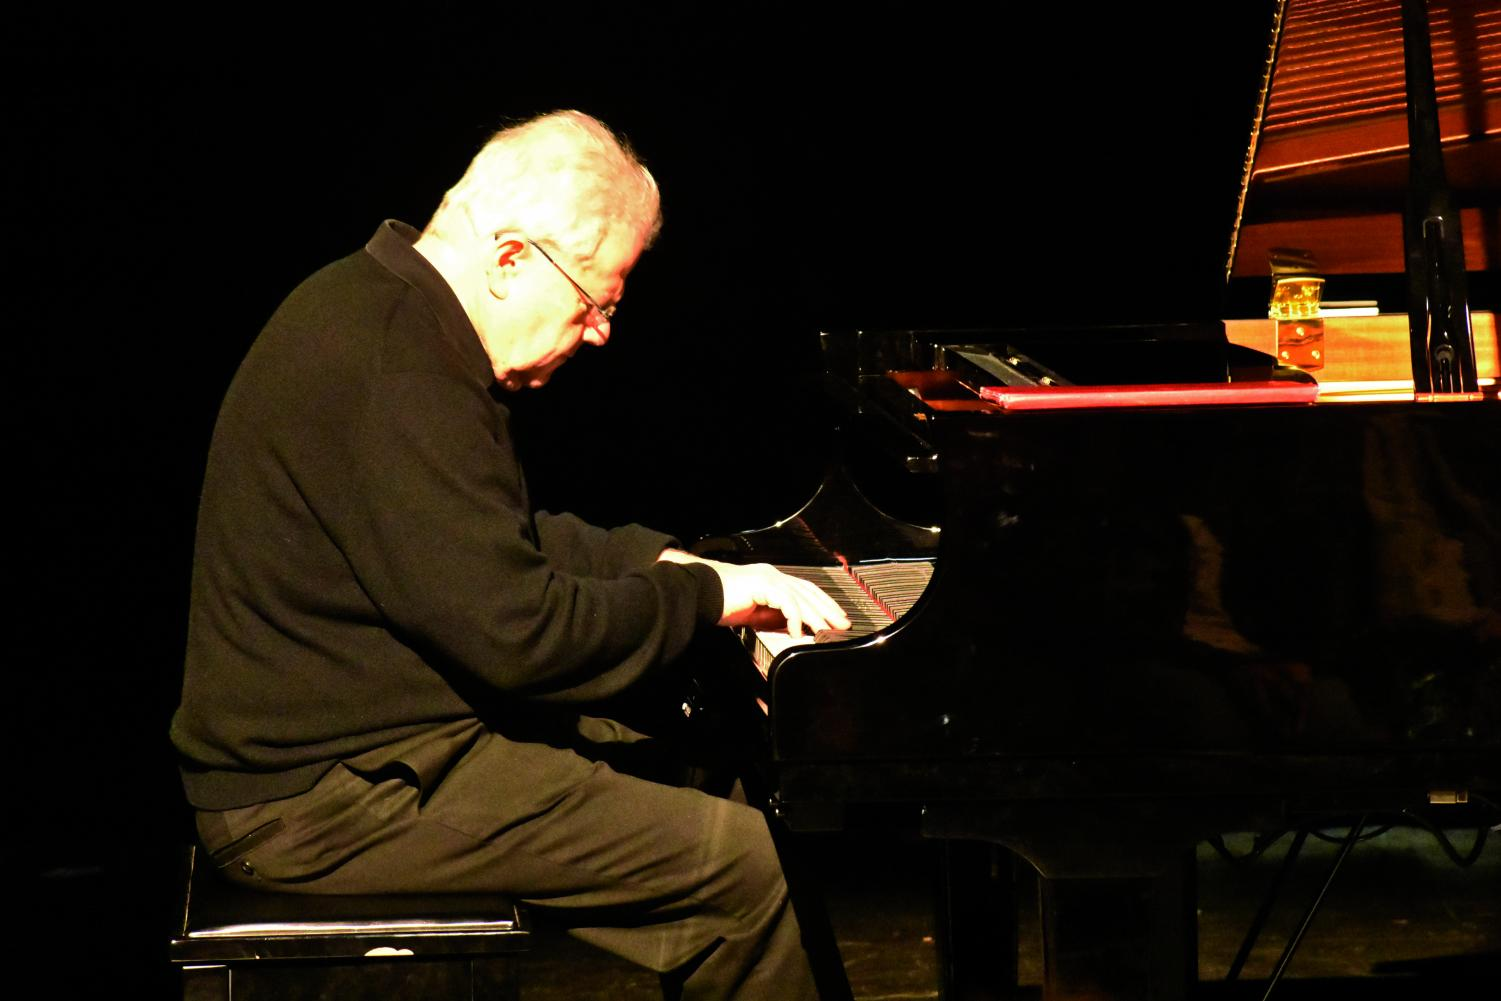 World renowned pianist, Emanuel Ax, plays Beethoven in the Vincent Murray Auditorium at Grady High School. Through his music, Ax has learned the value of practice.